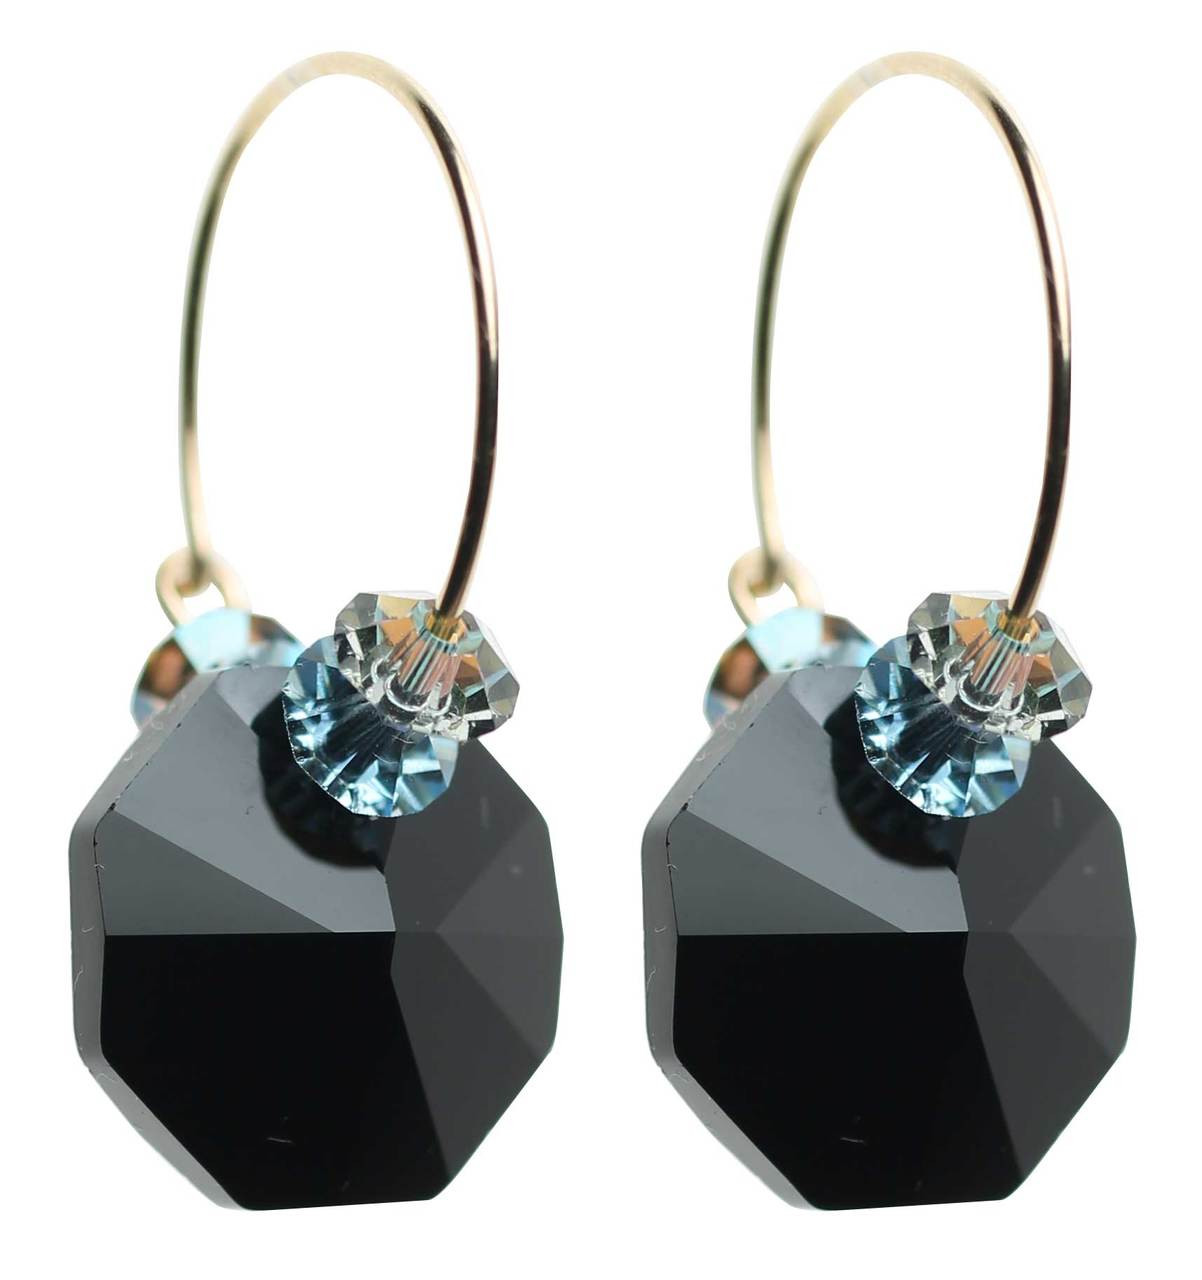 0ec9d8f2cb68a Jet Black, Aqua and Champagne Hoop Earrings • Modern and Vintage Crystals  from Swarovski • 14K Gold Filled Metal • Navajo Collection